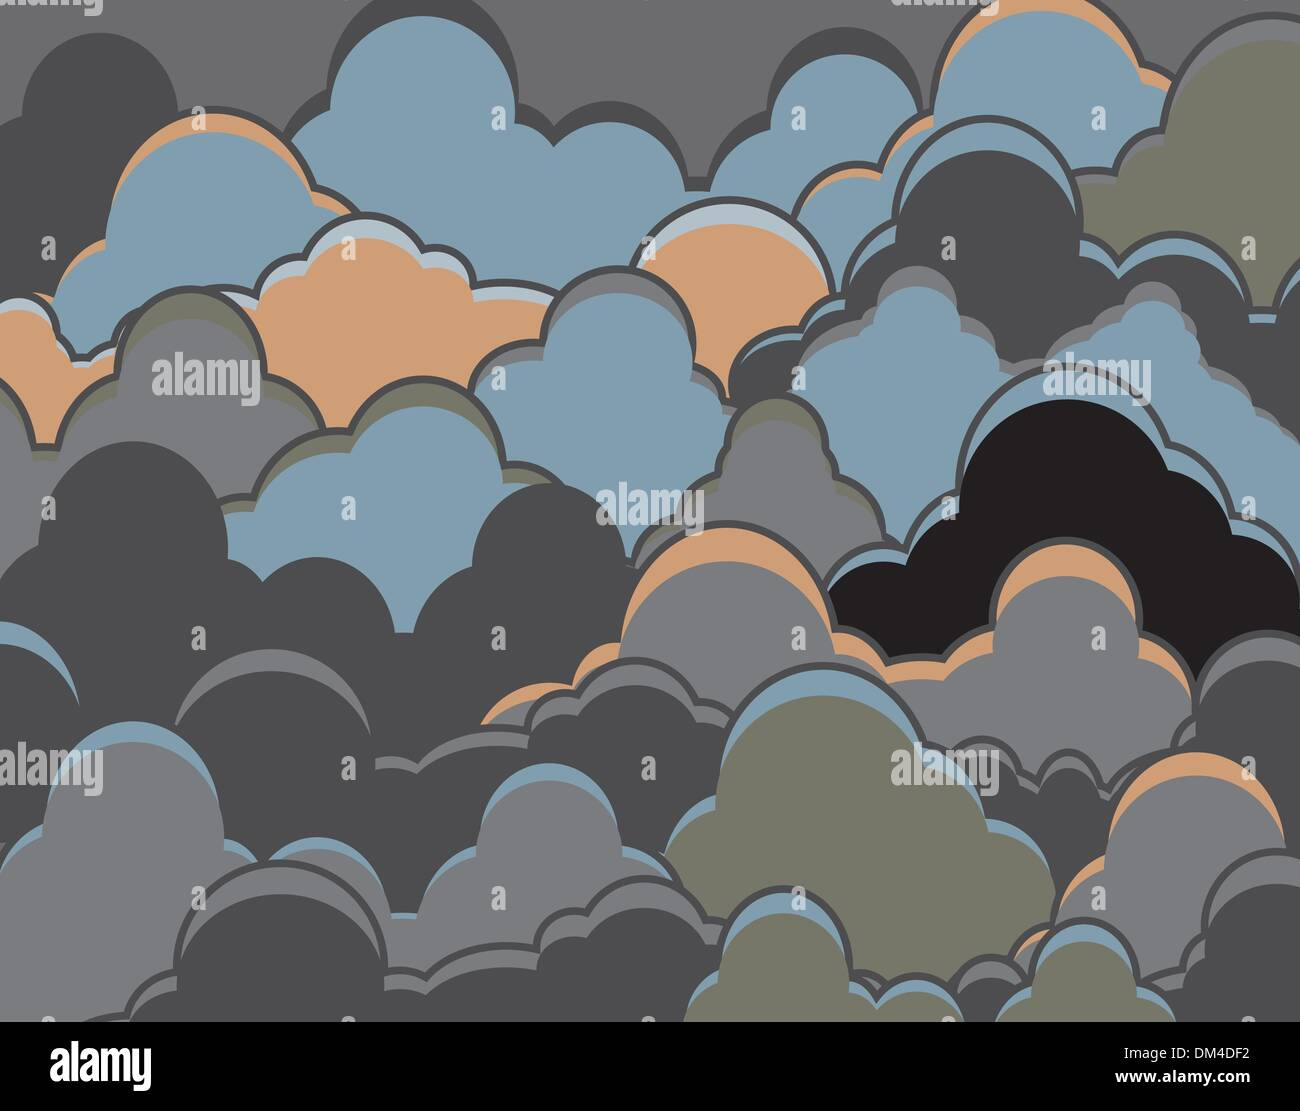 Cloudy background - Stock Vector